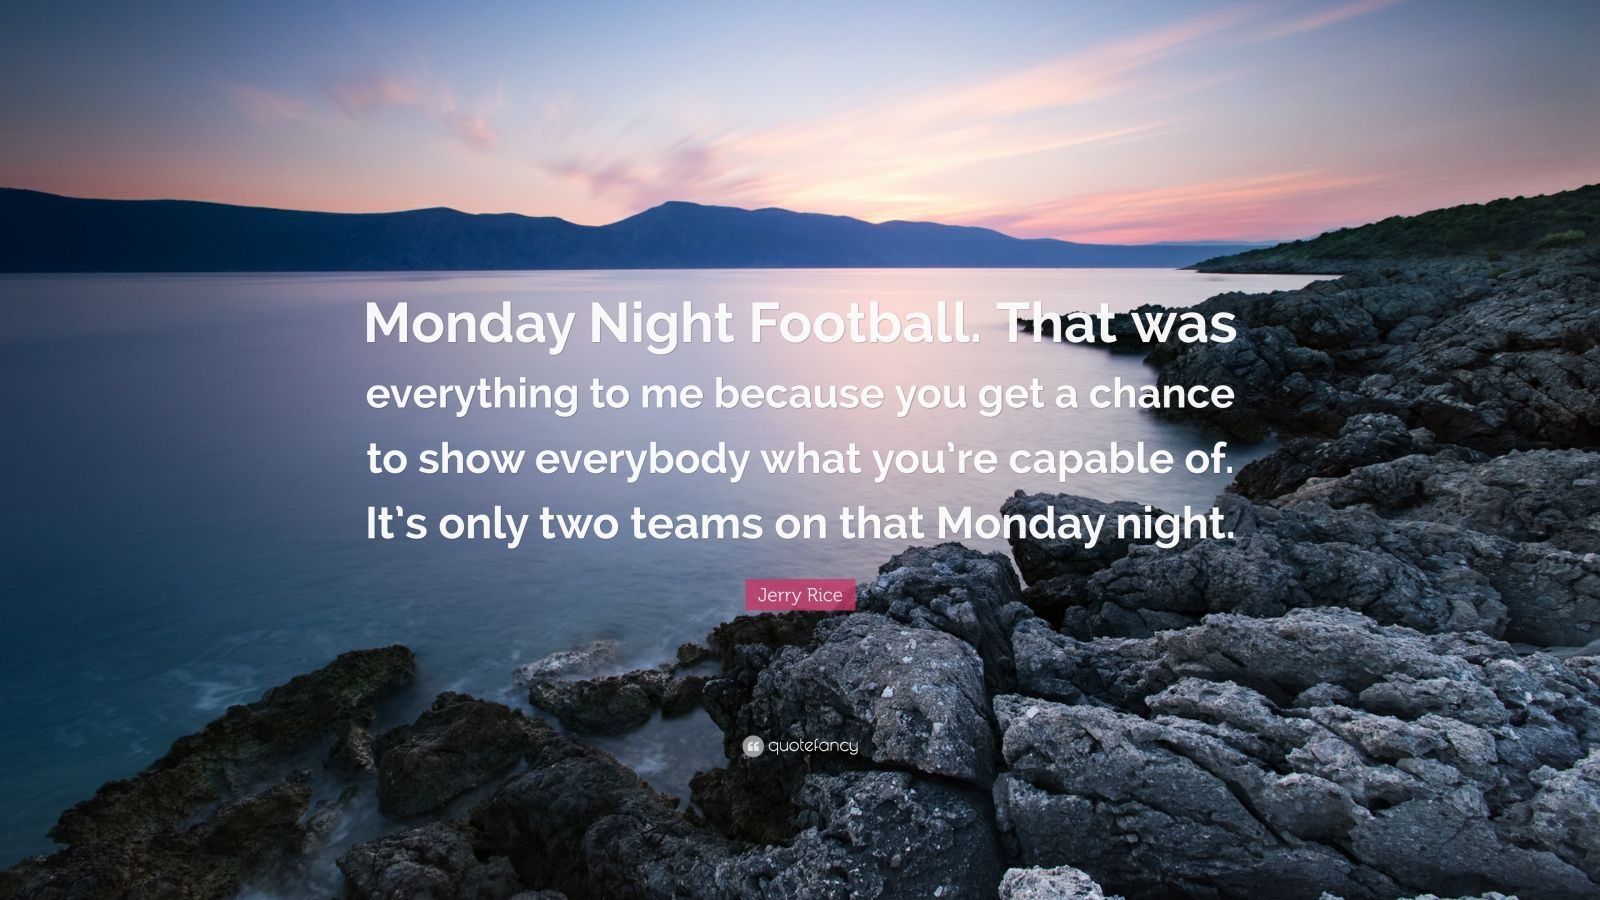 """Jerry Rice Quote: """"Monday Night Football. That was everything to me because you get a chance to show everybody what you're capable of. It's only two teams on that Monday night."""""""